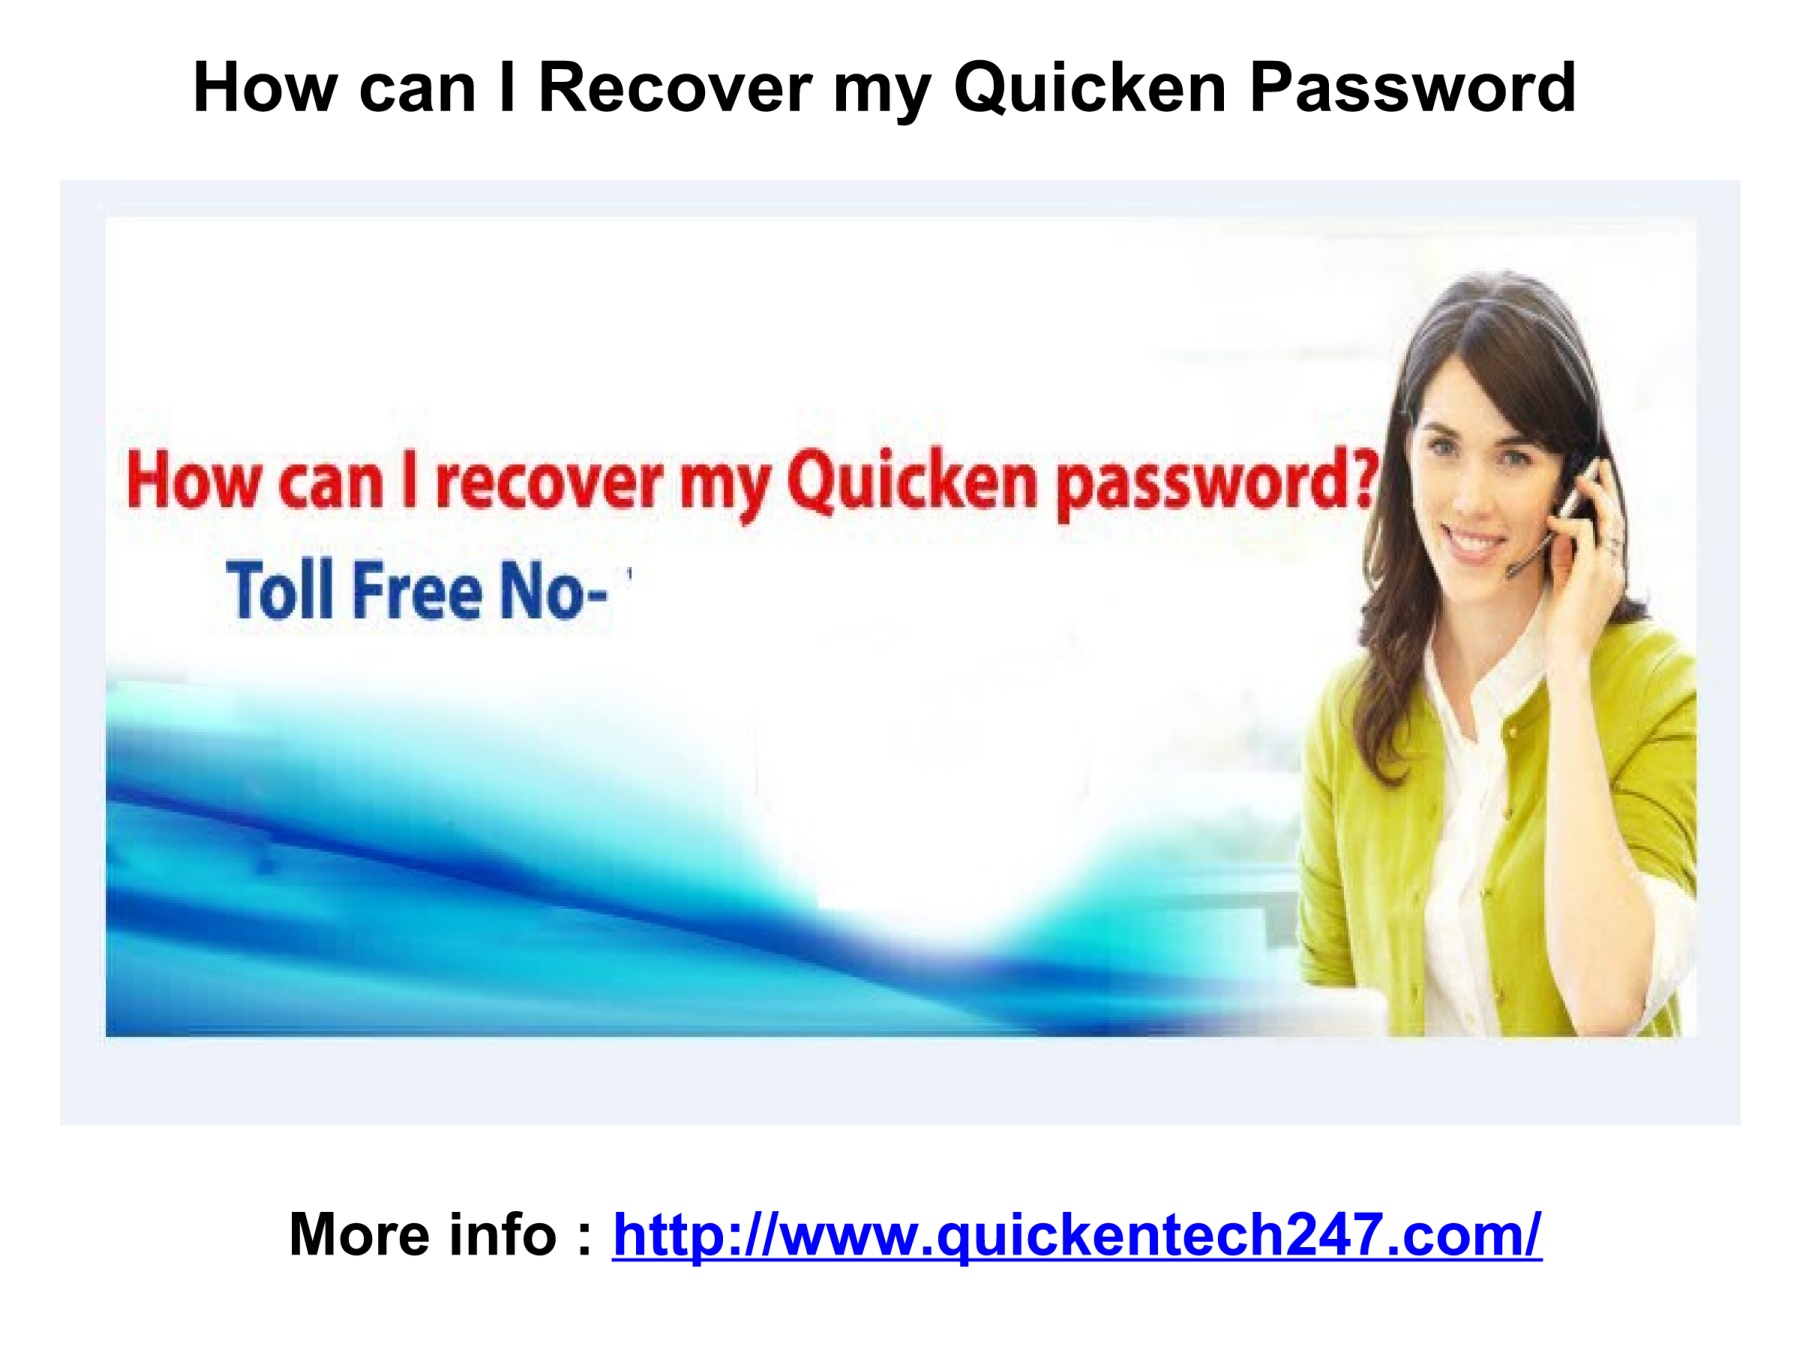 How can I Recover my Quicken Password Pages 1 - 4 - Text